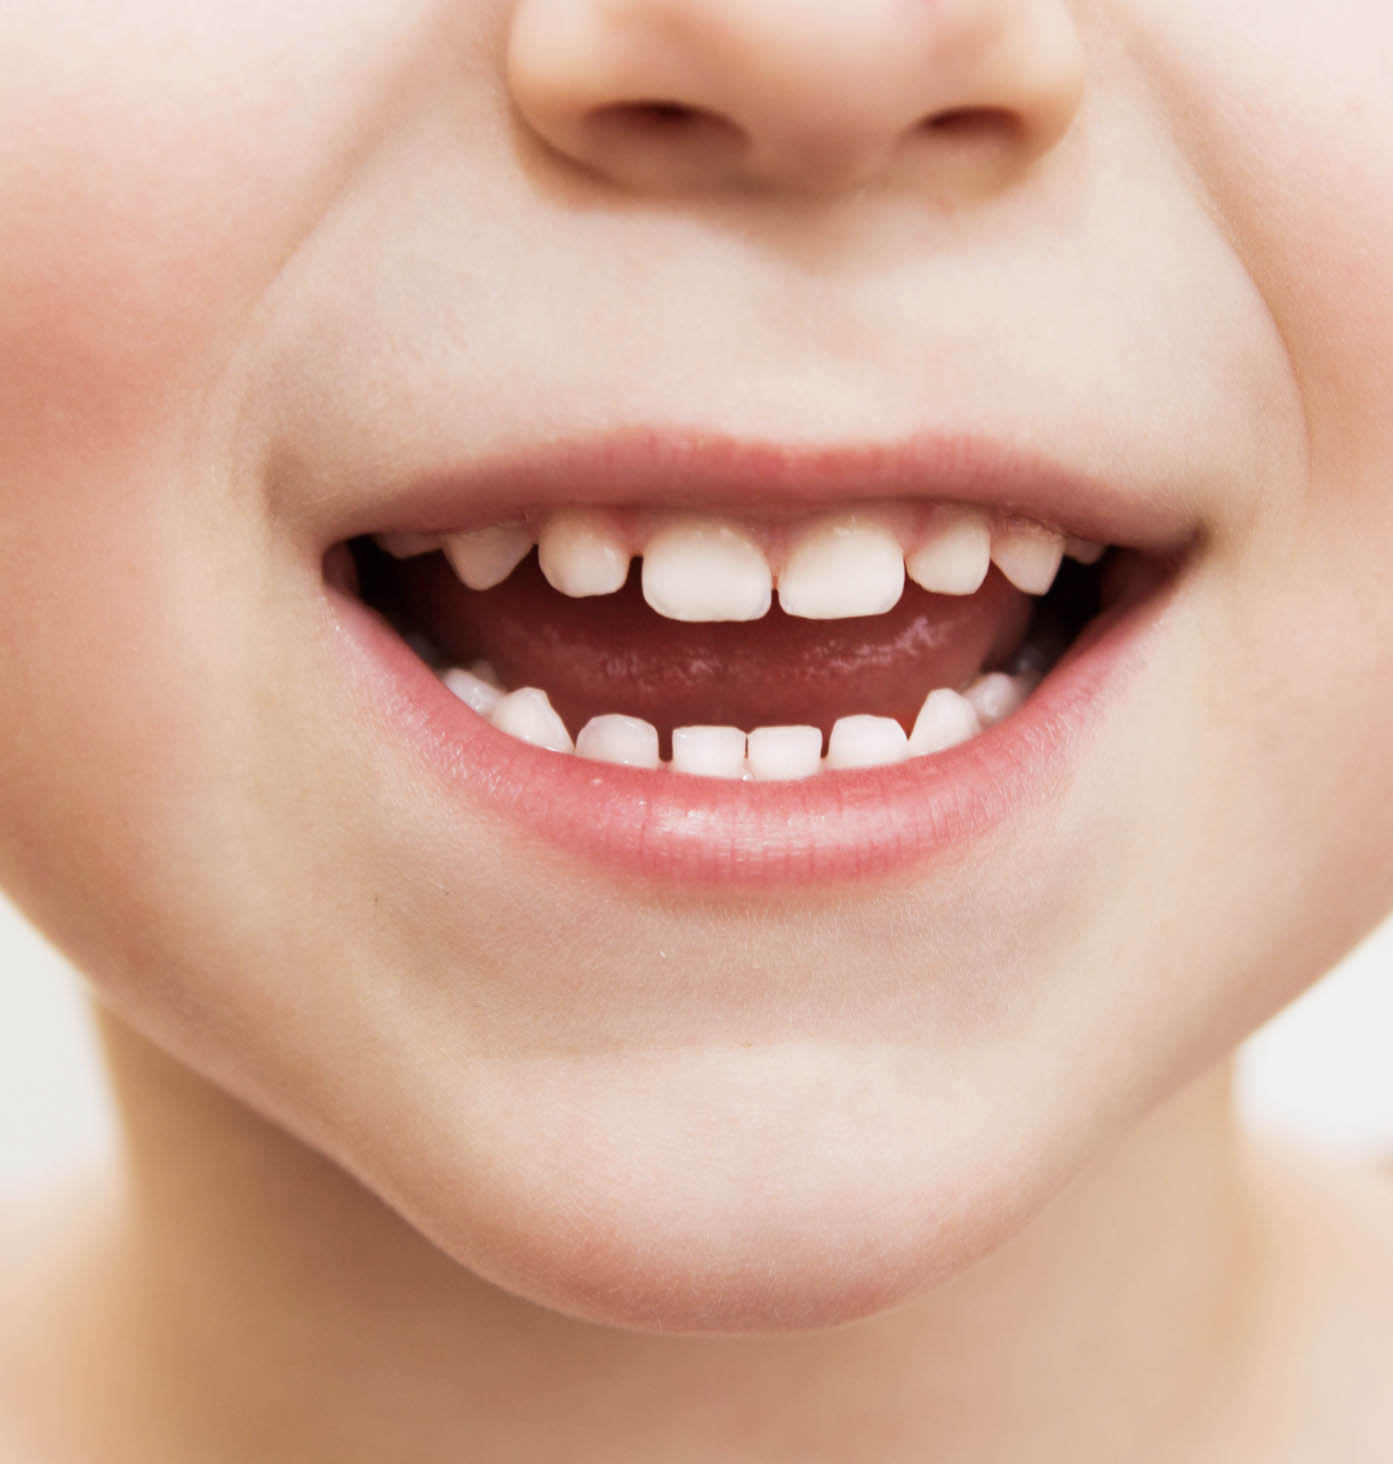 Child with primary teeth